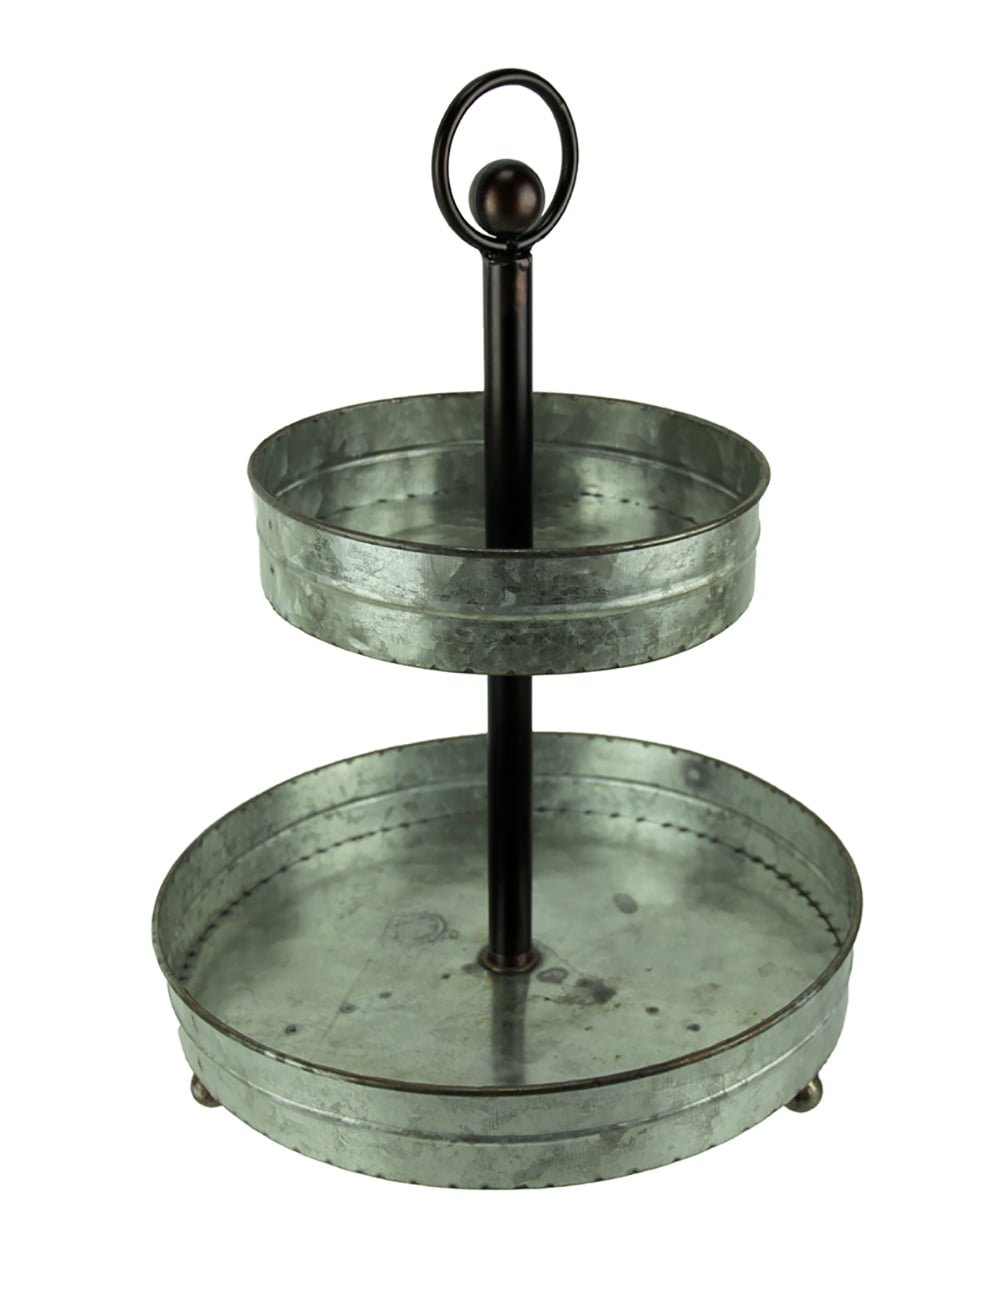 Rustic Round 2 Tier Galvanized Metal 16 Inch Tall Country Farmhouse Serving Tray Walmart Canada